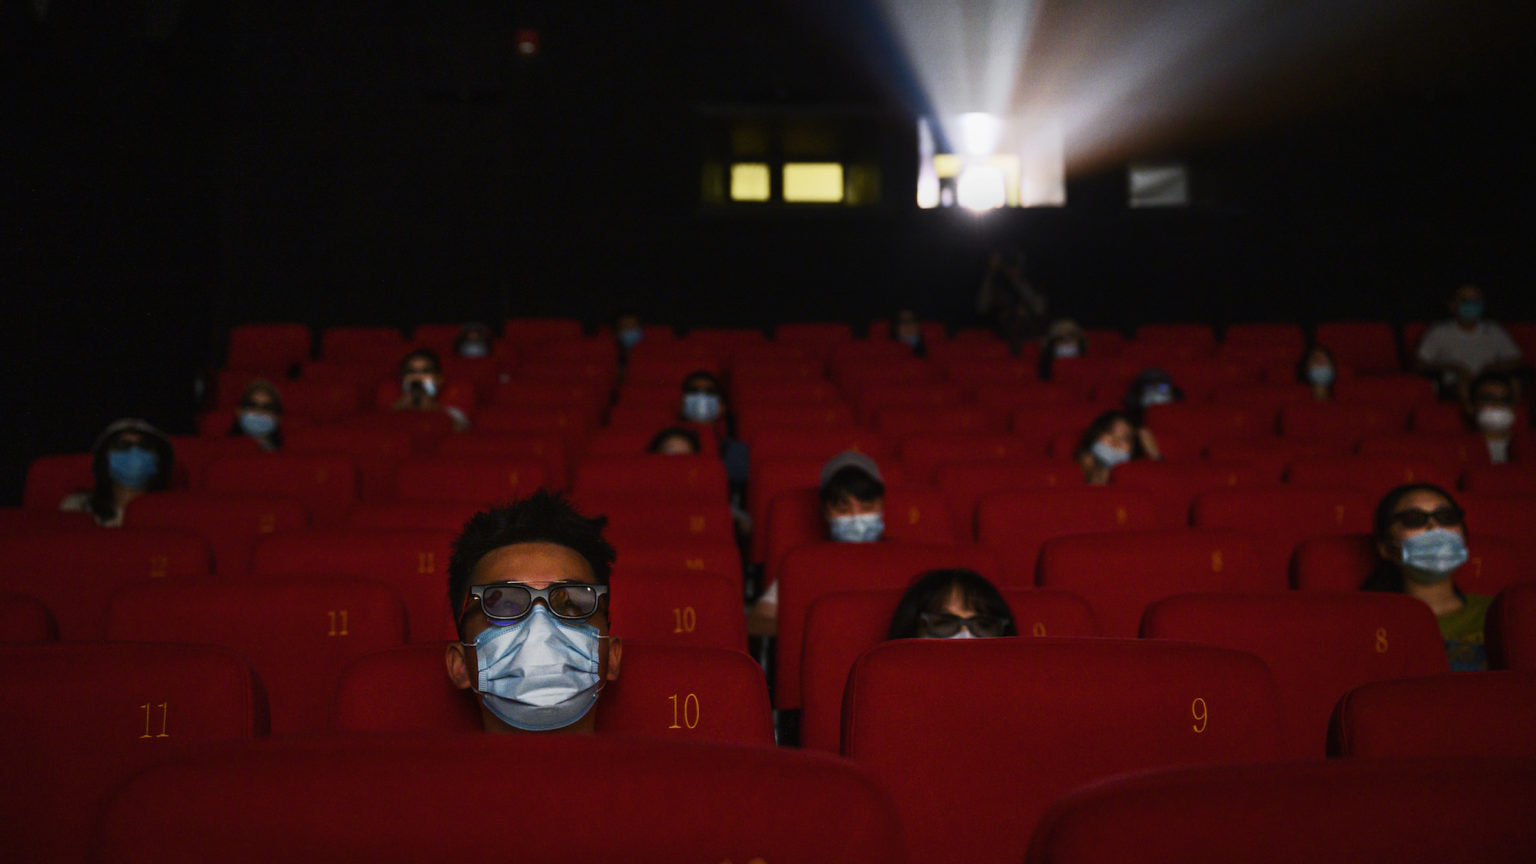 Keep trigger warnings out of the cinema